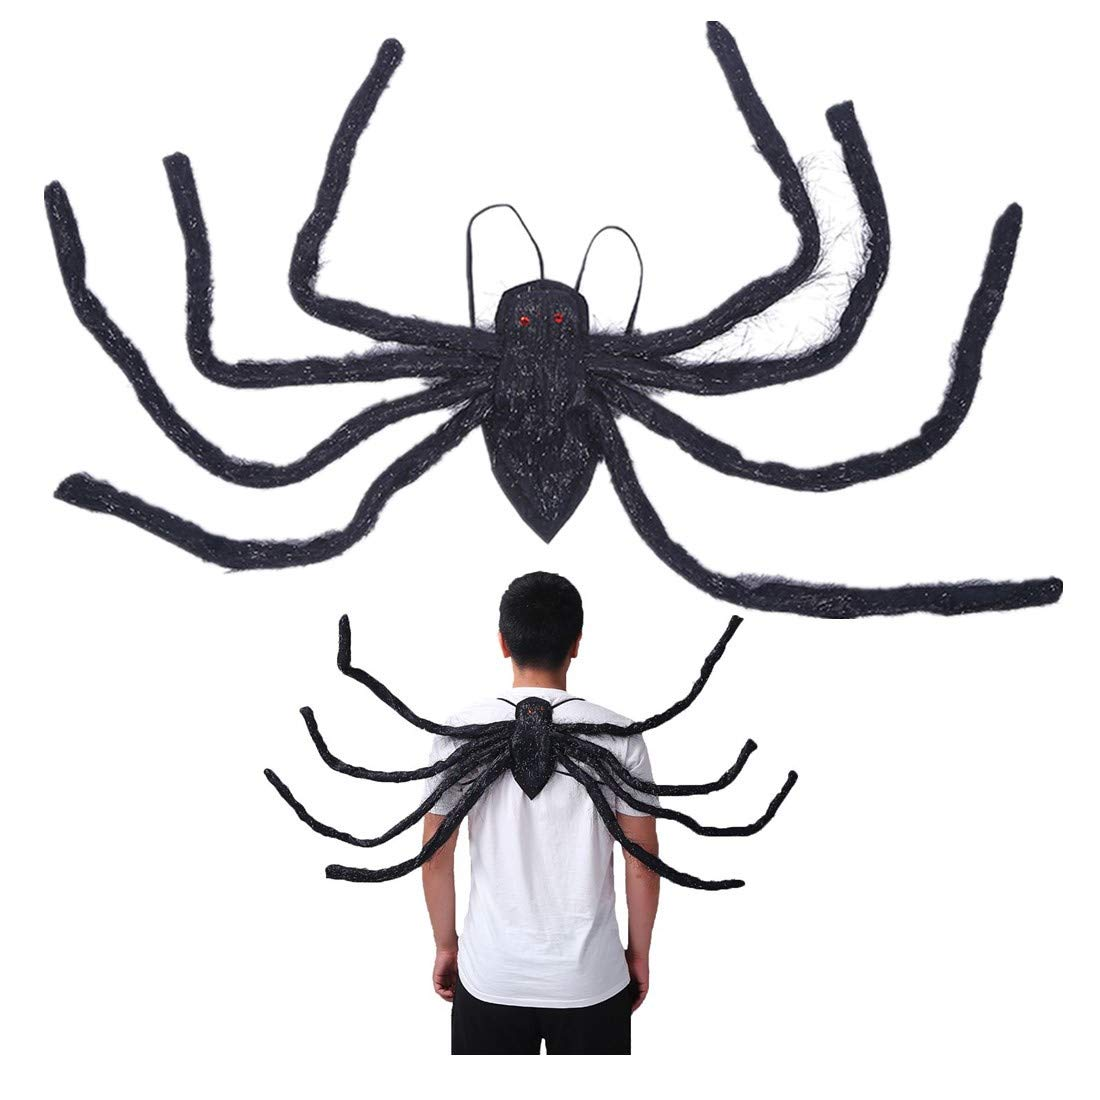 59 Inch Fake Spider with Straps Hairy Spider Realistic